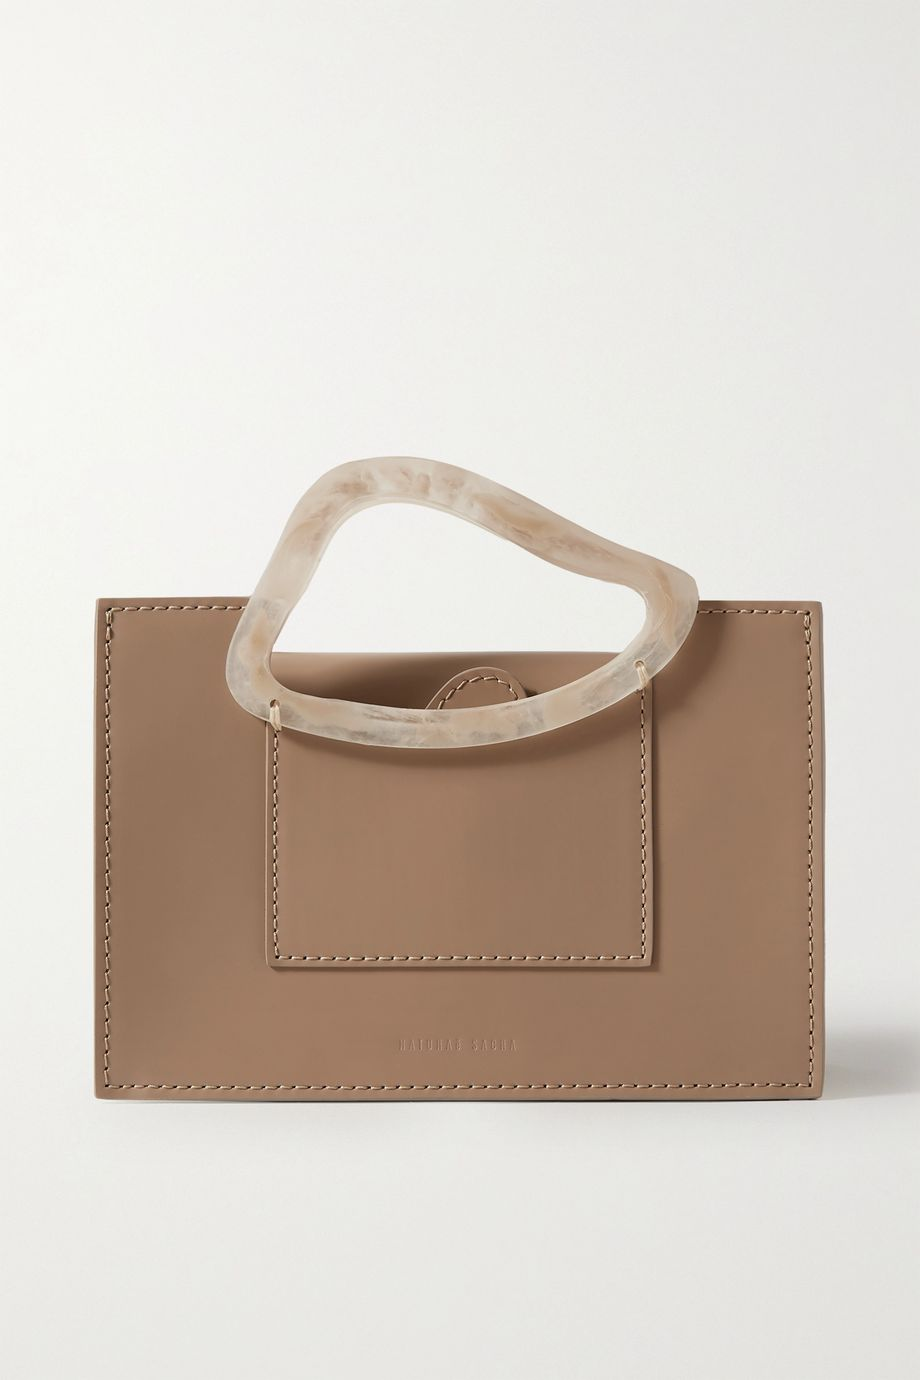 Naturae Sacra Arp mini leather and resin tote